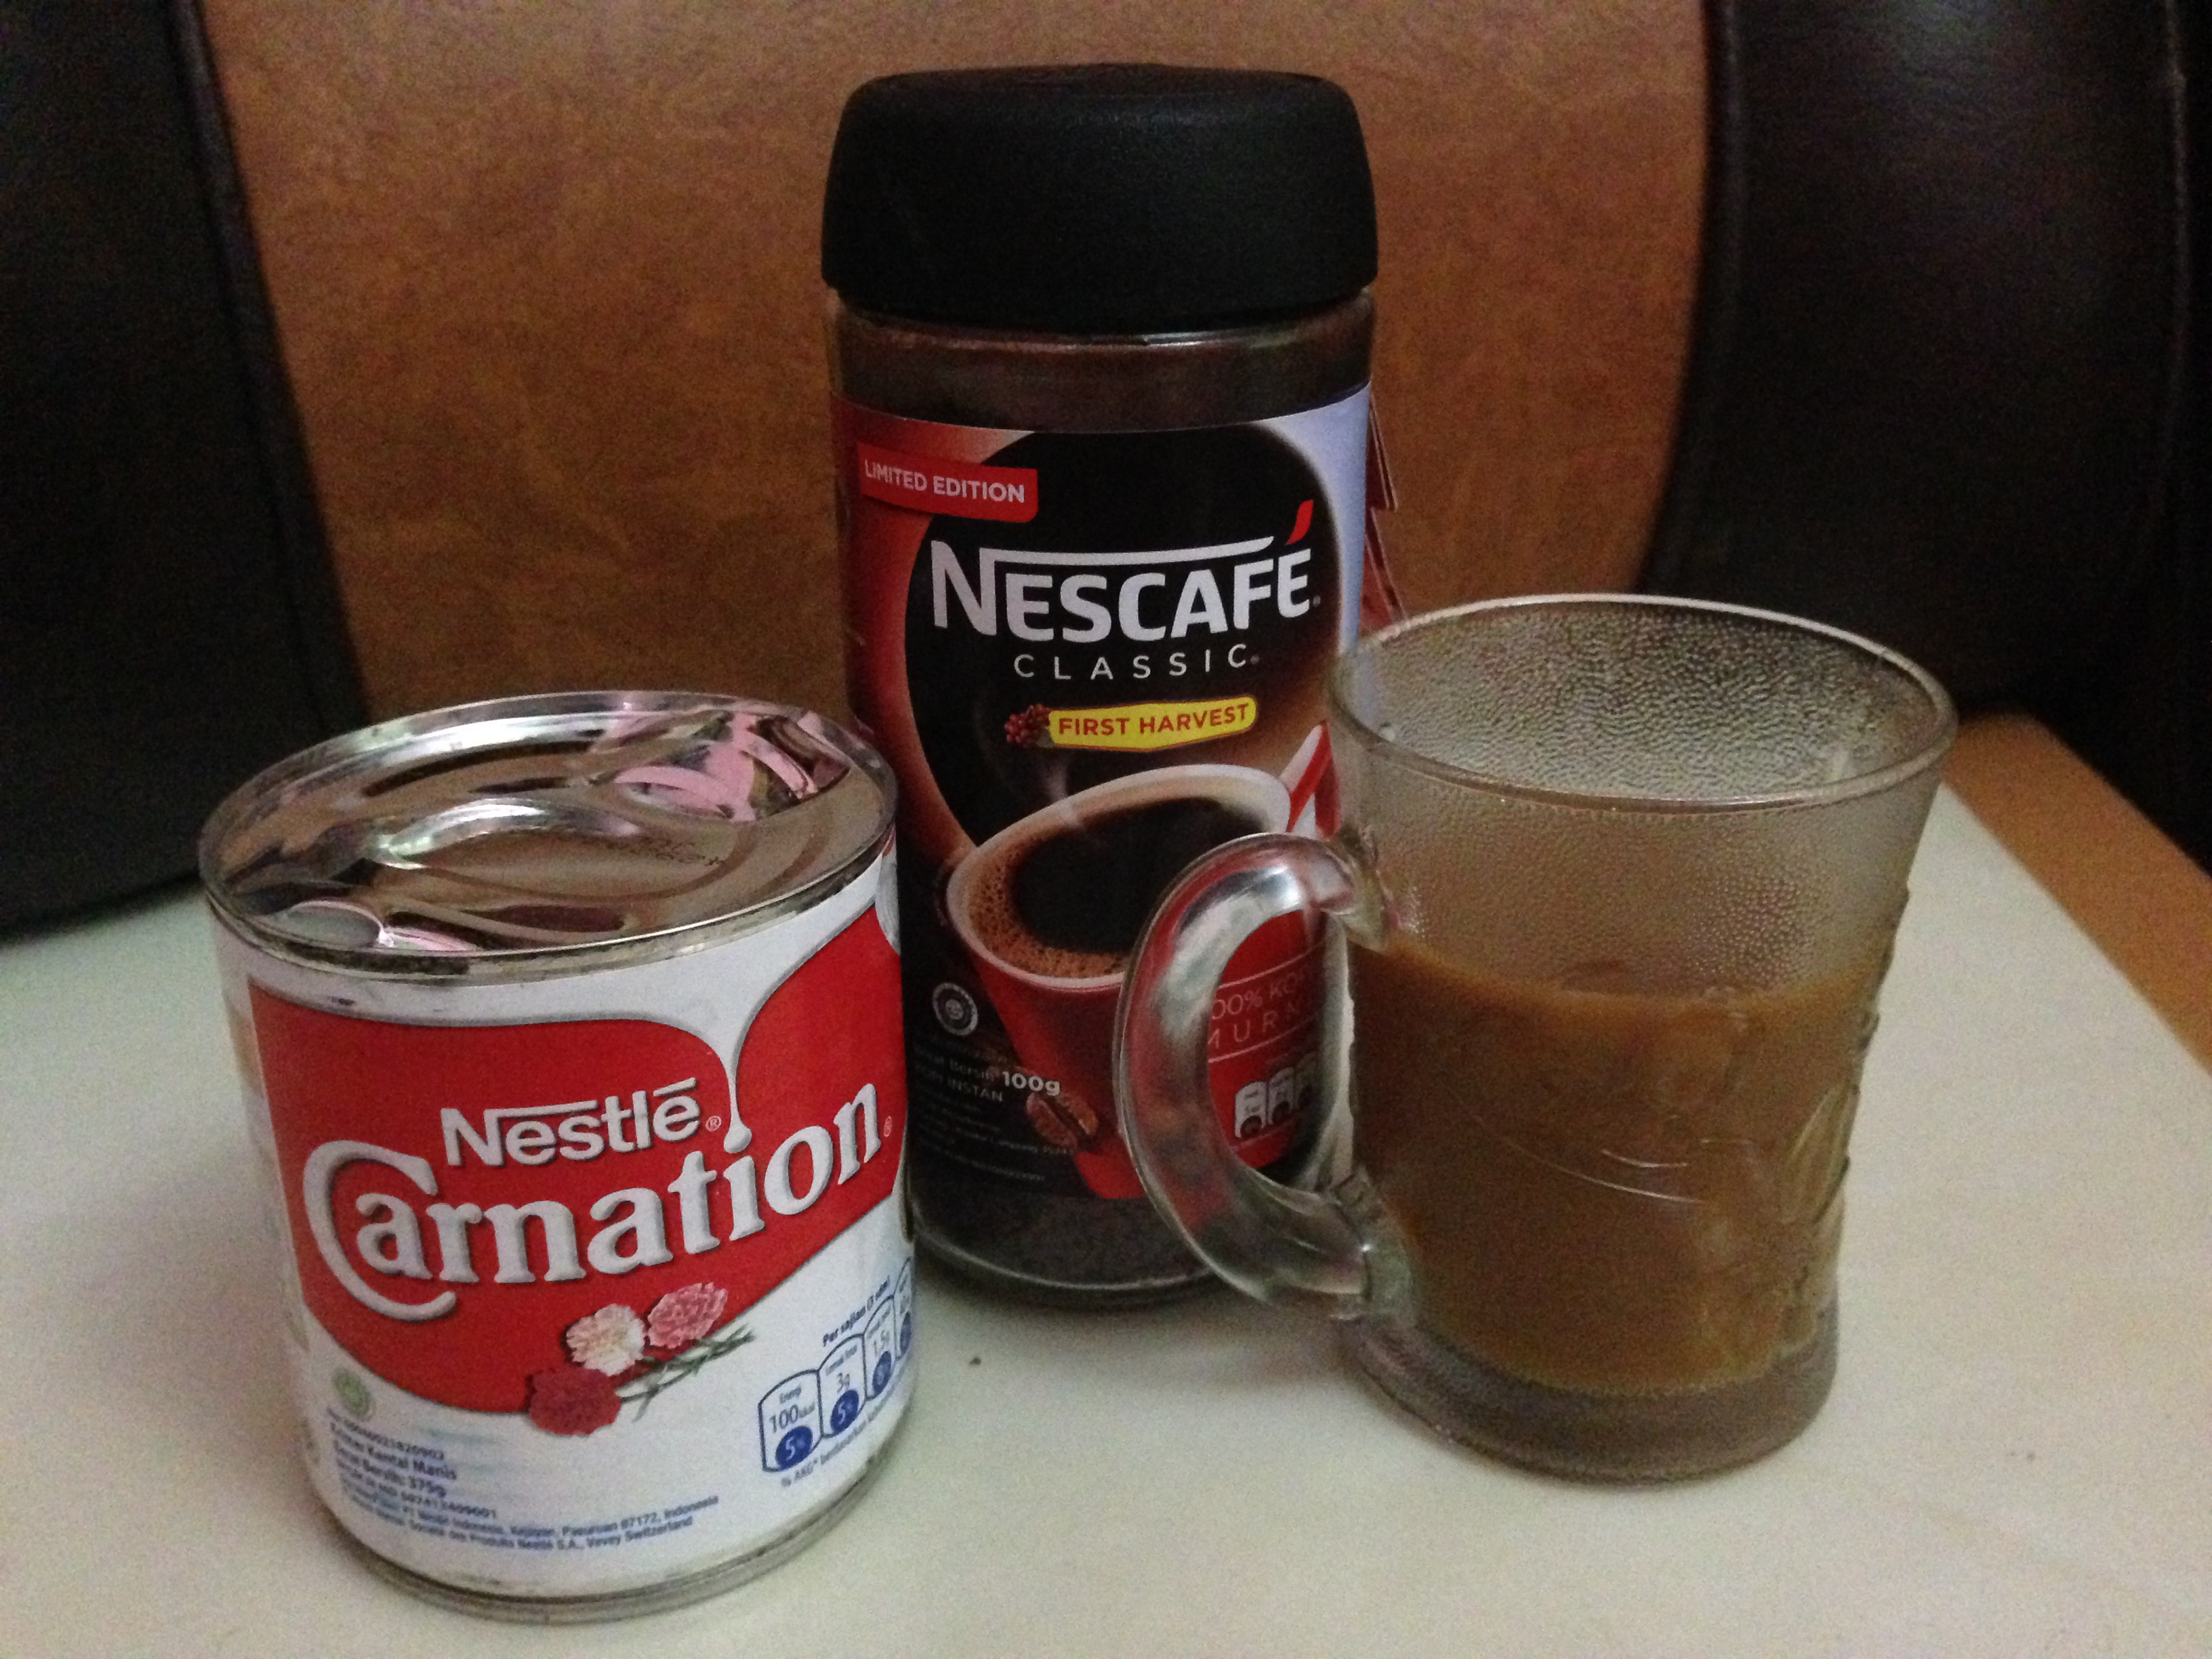 Nescafe Classic First Harvest + Carnation